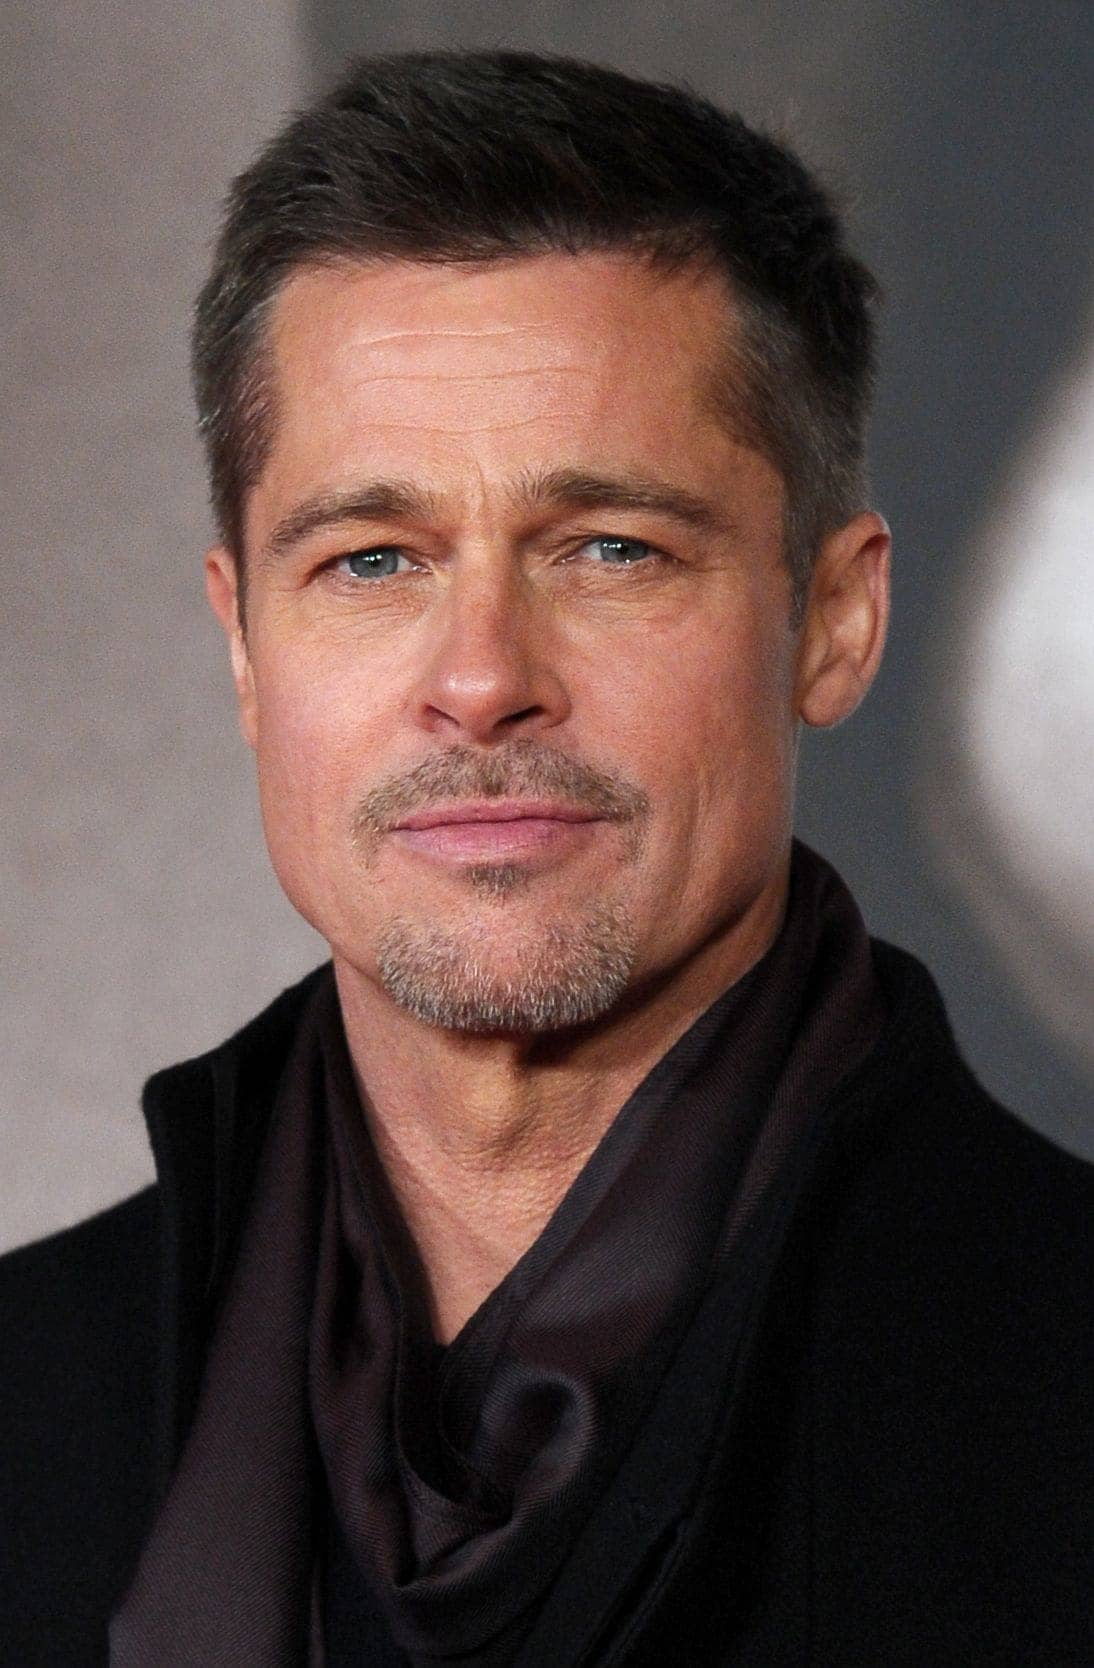 close up shot of brad pitt with crew cut hairstyle, wearing black top and posing